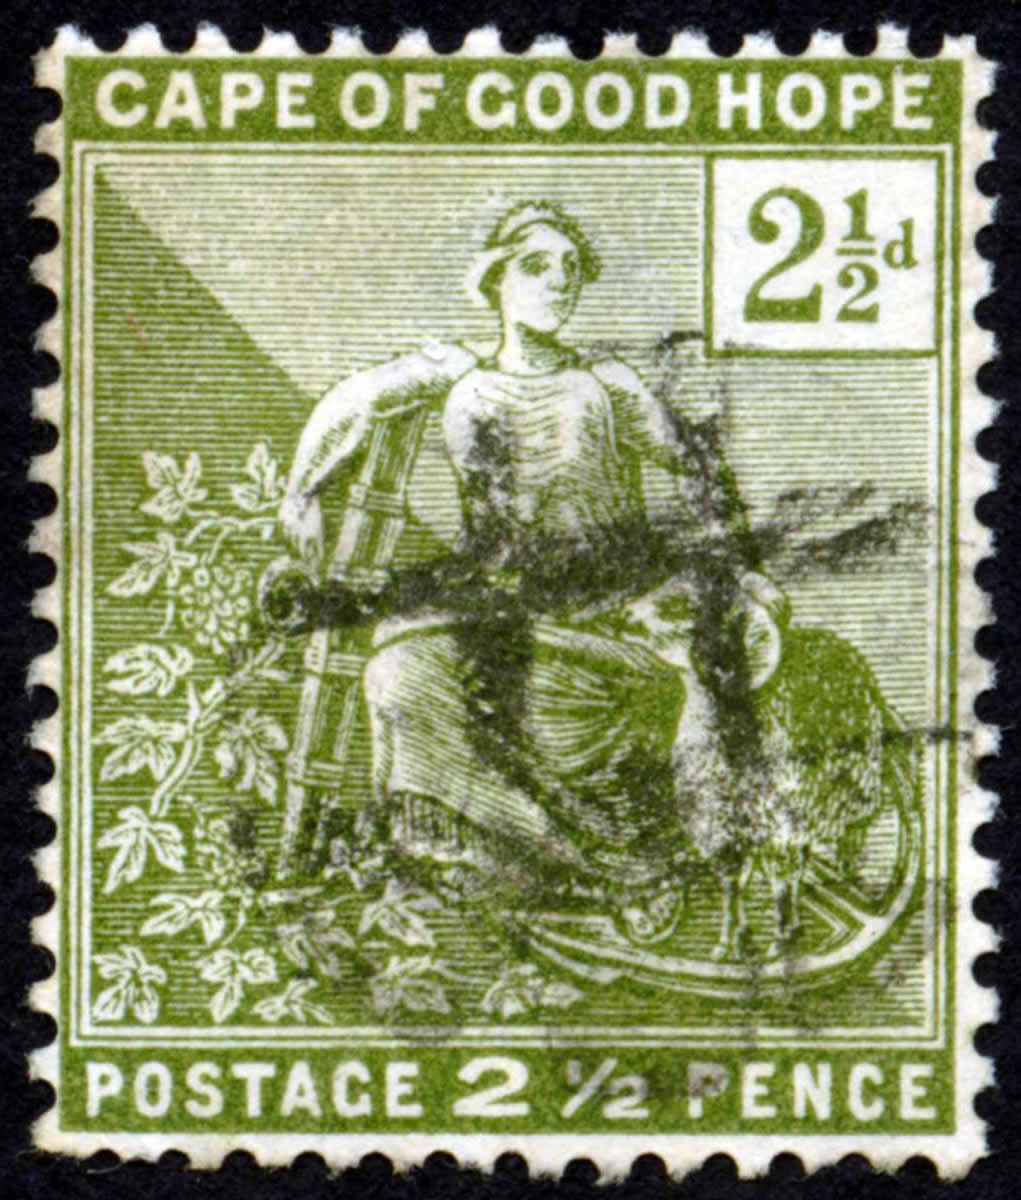 The Permanent 2 1/2 pence stamp of June 1892